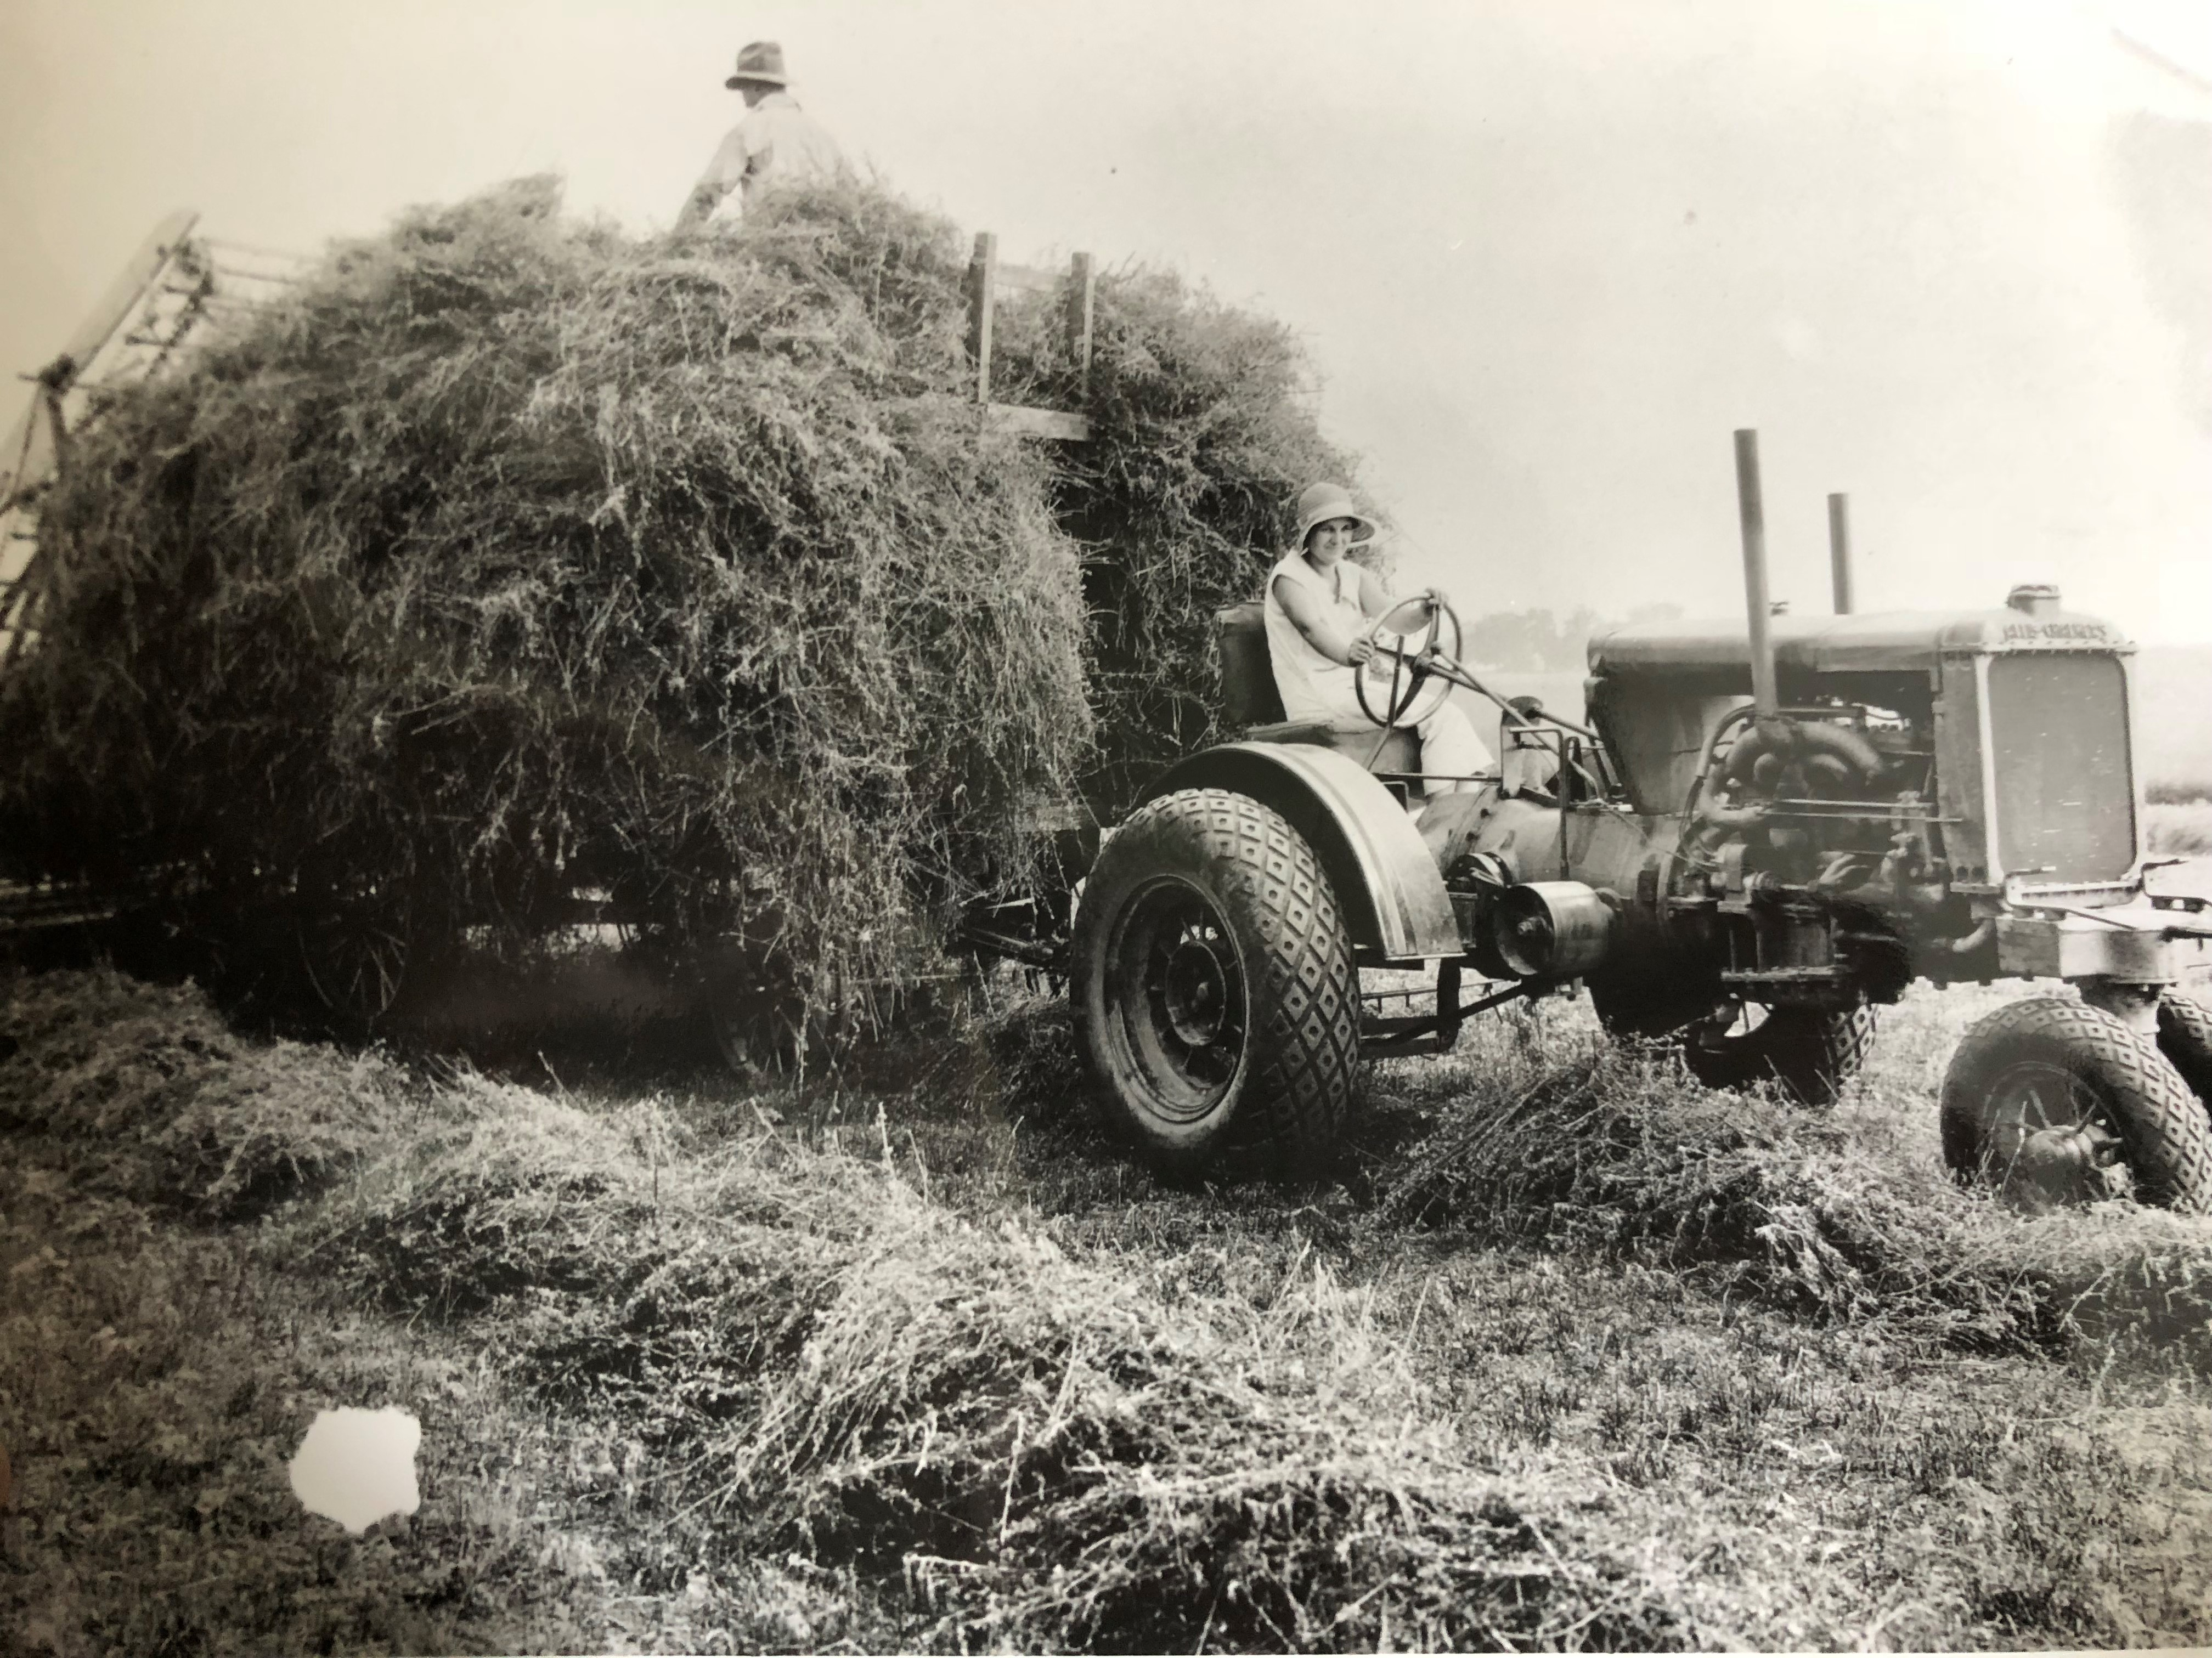 Photo-a-allis-chalmers-tractor-1930s